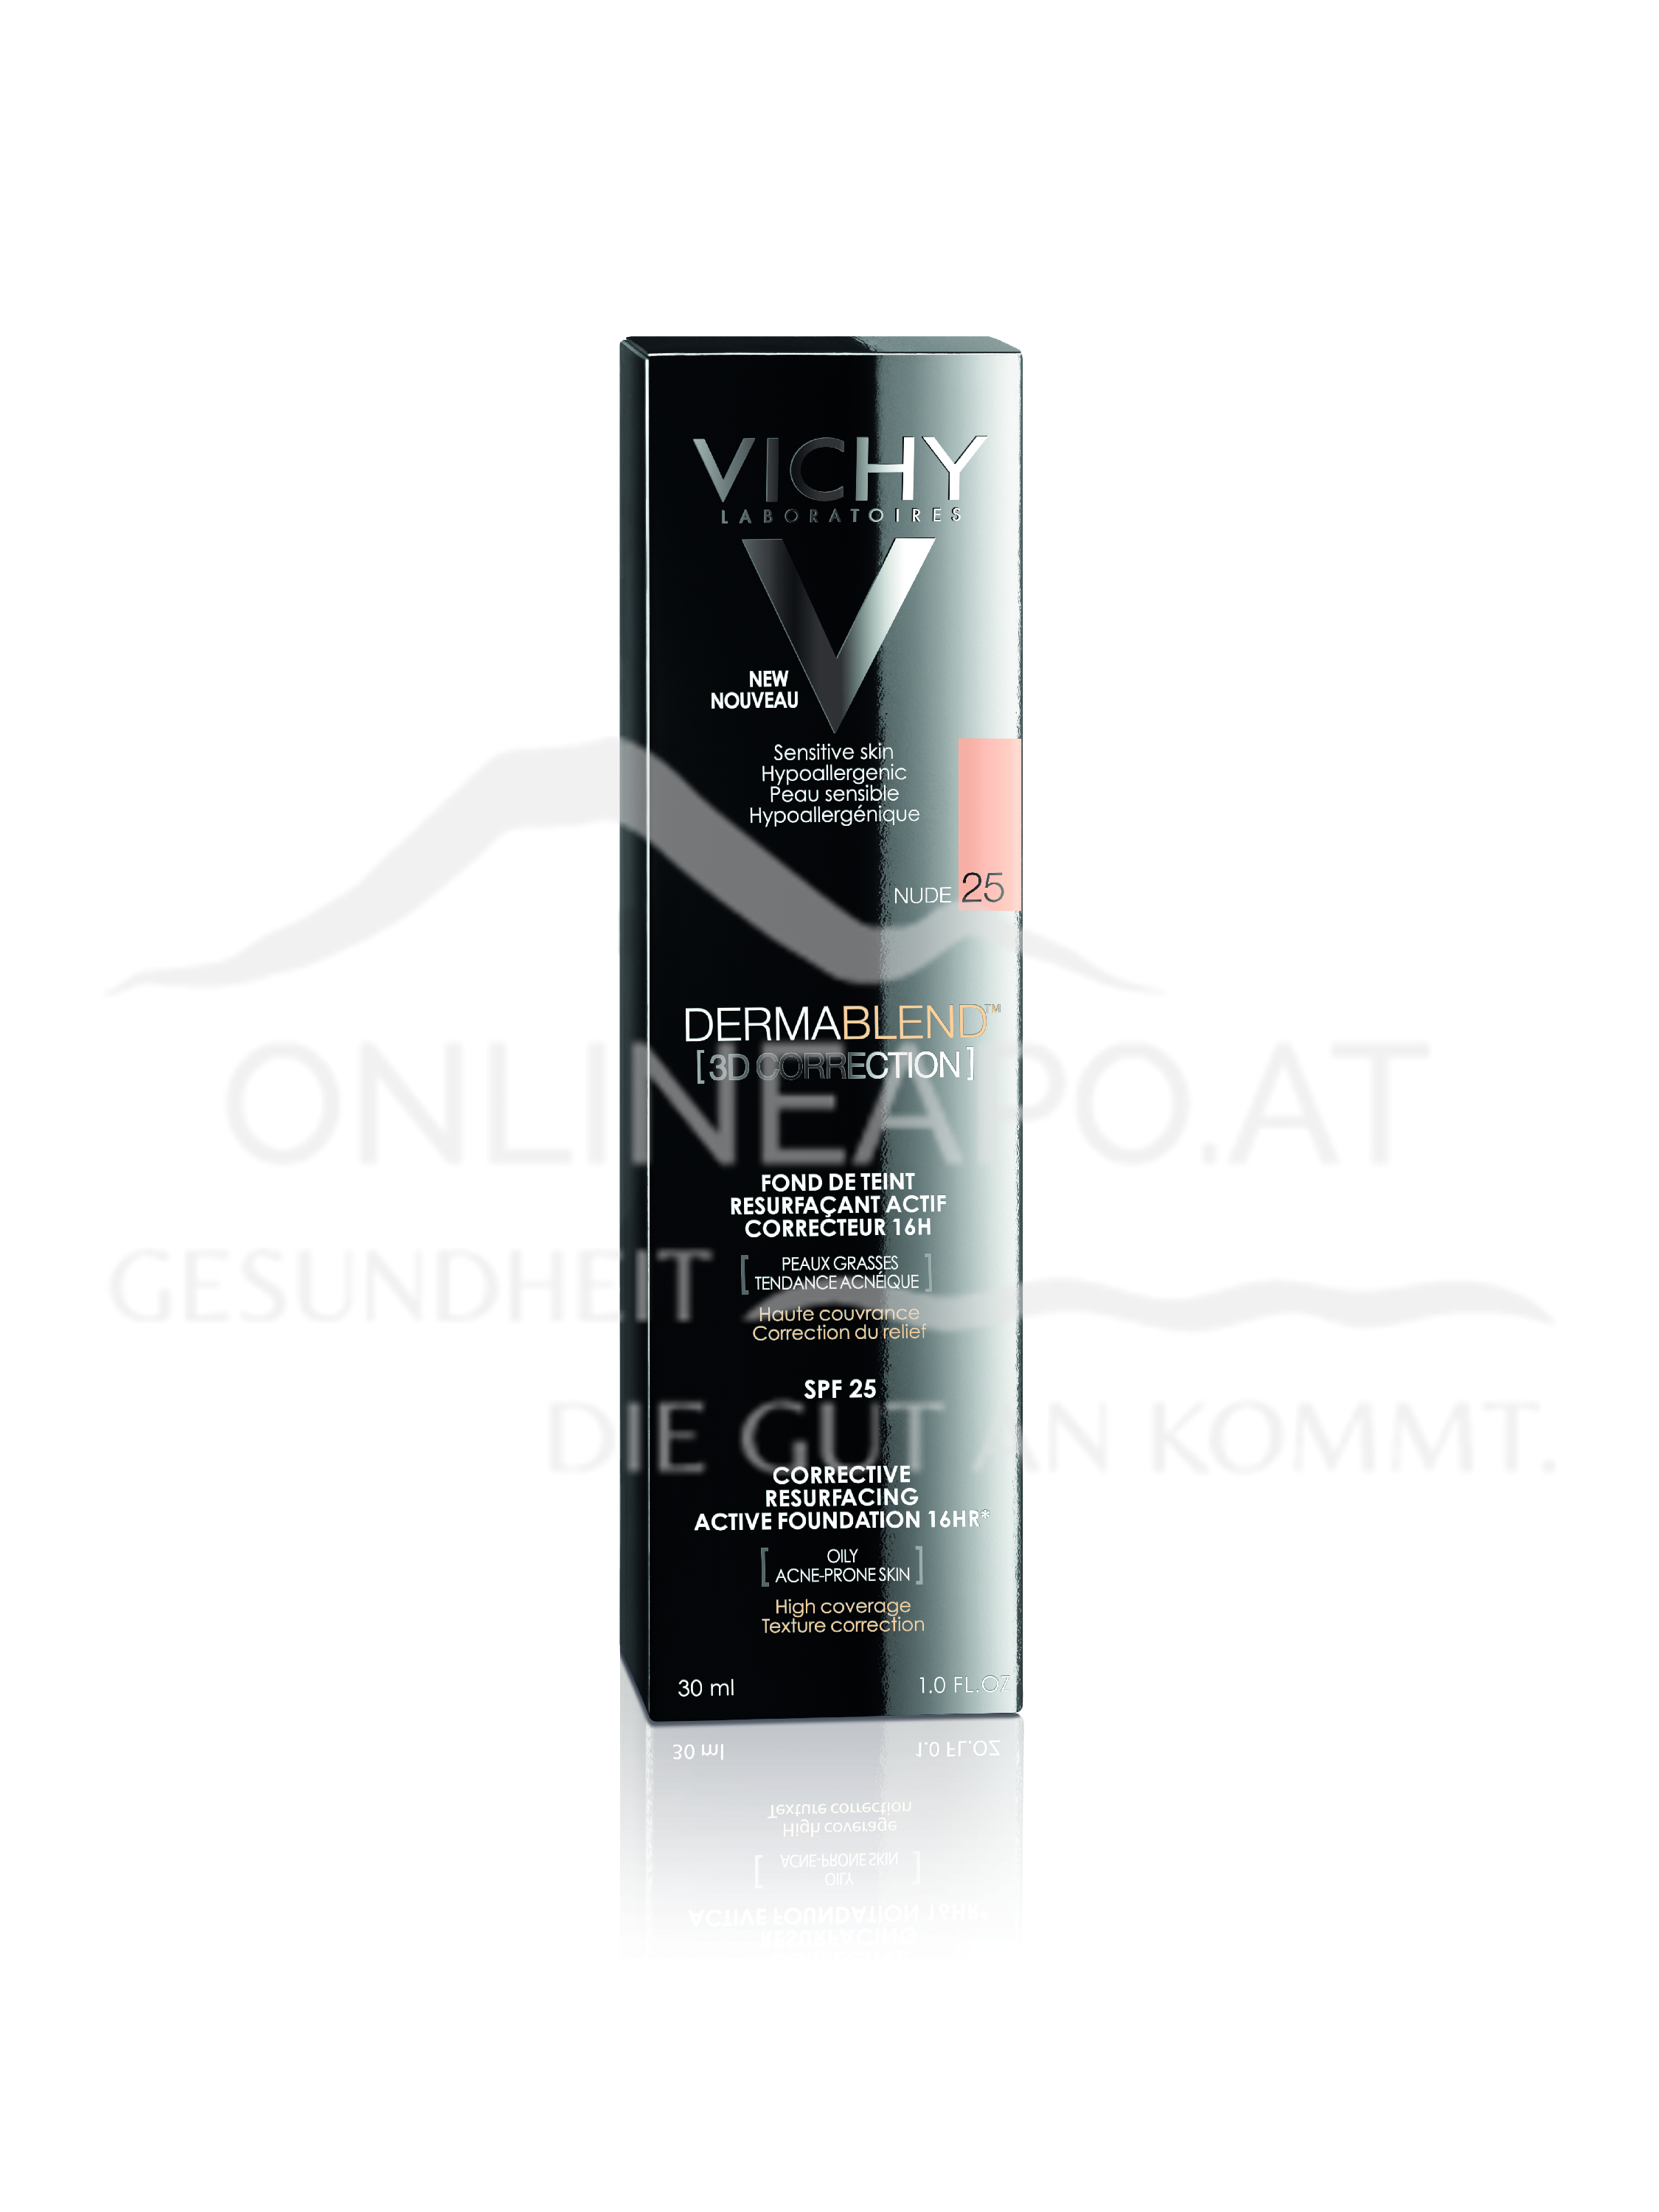 VICHY Dermablend 3D Make-Up 25 - Nude